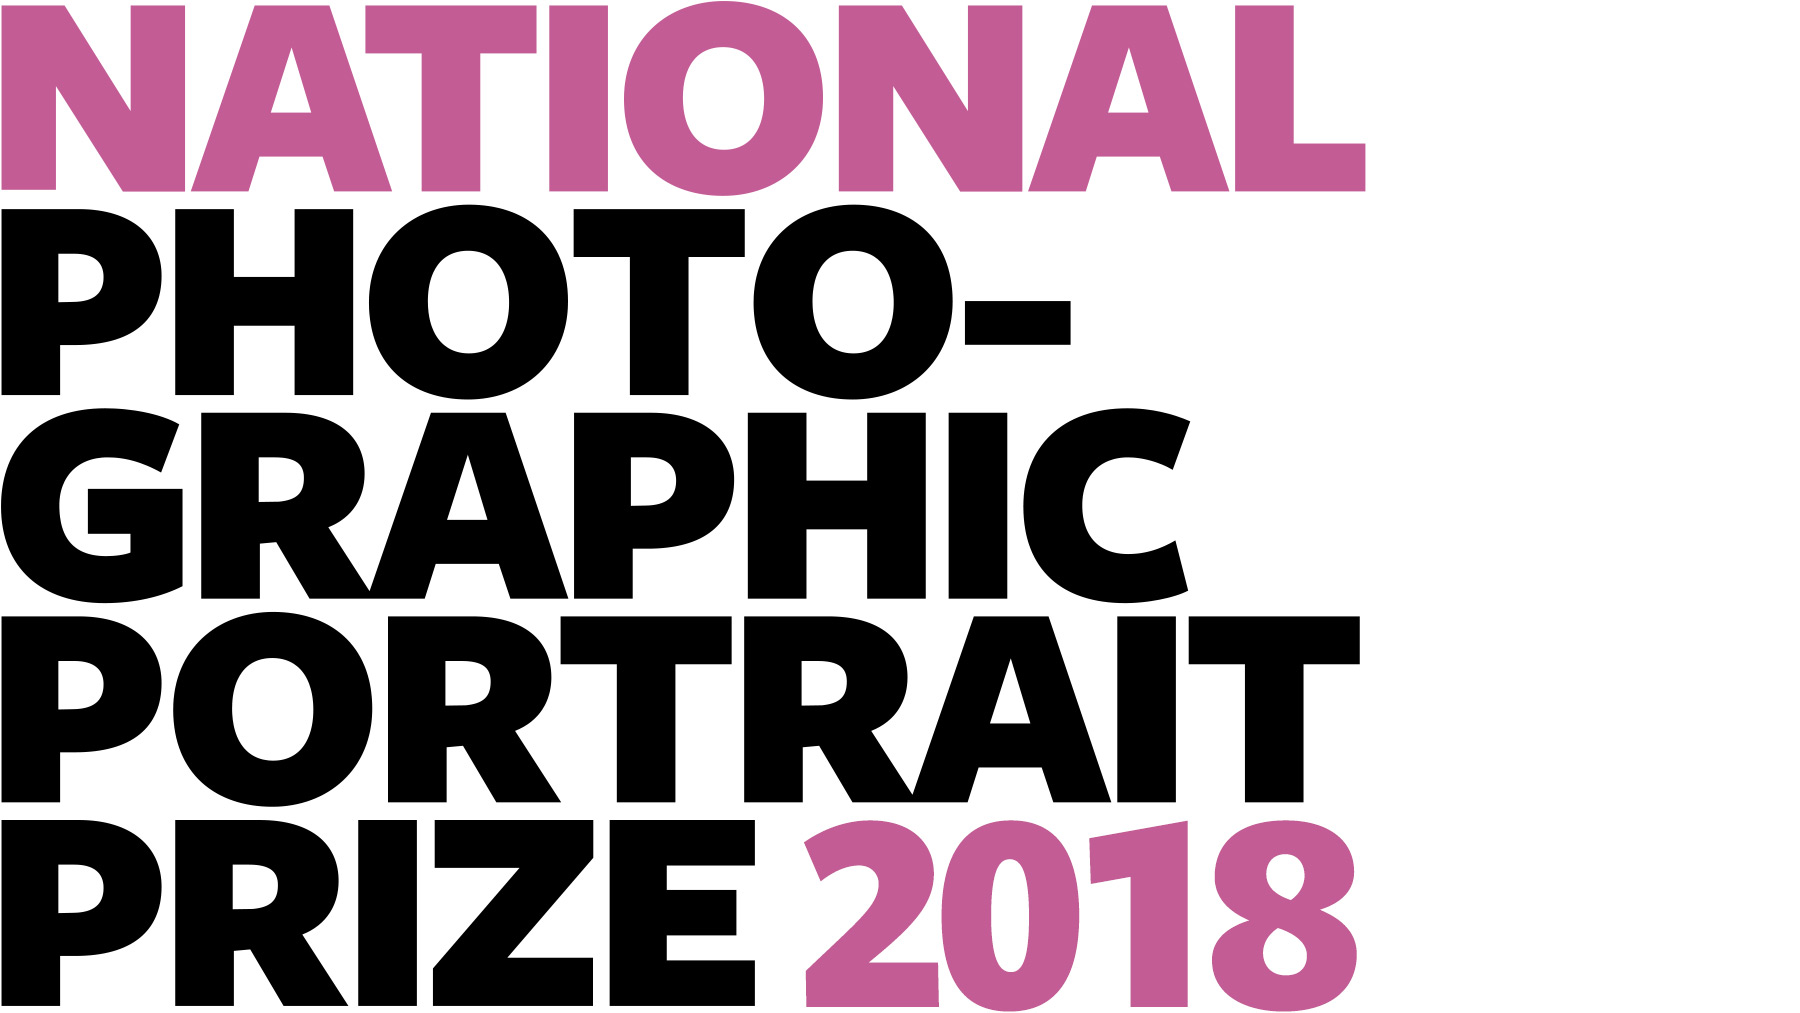 NPPP 2018 call for entries